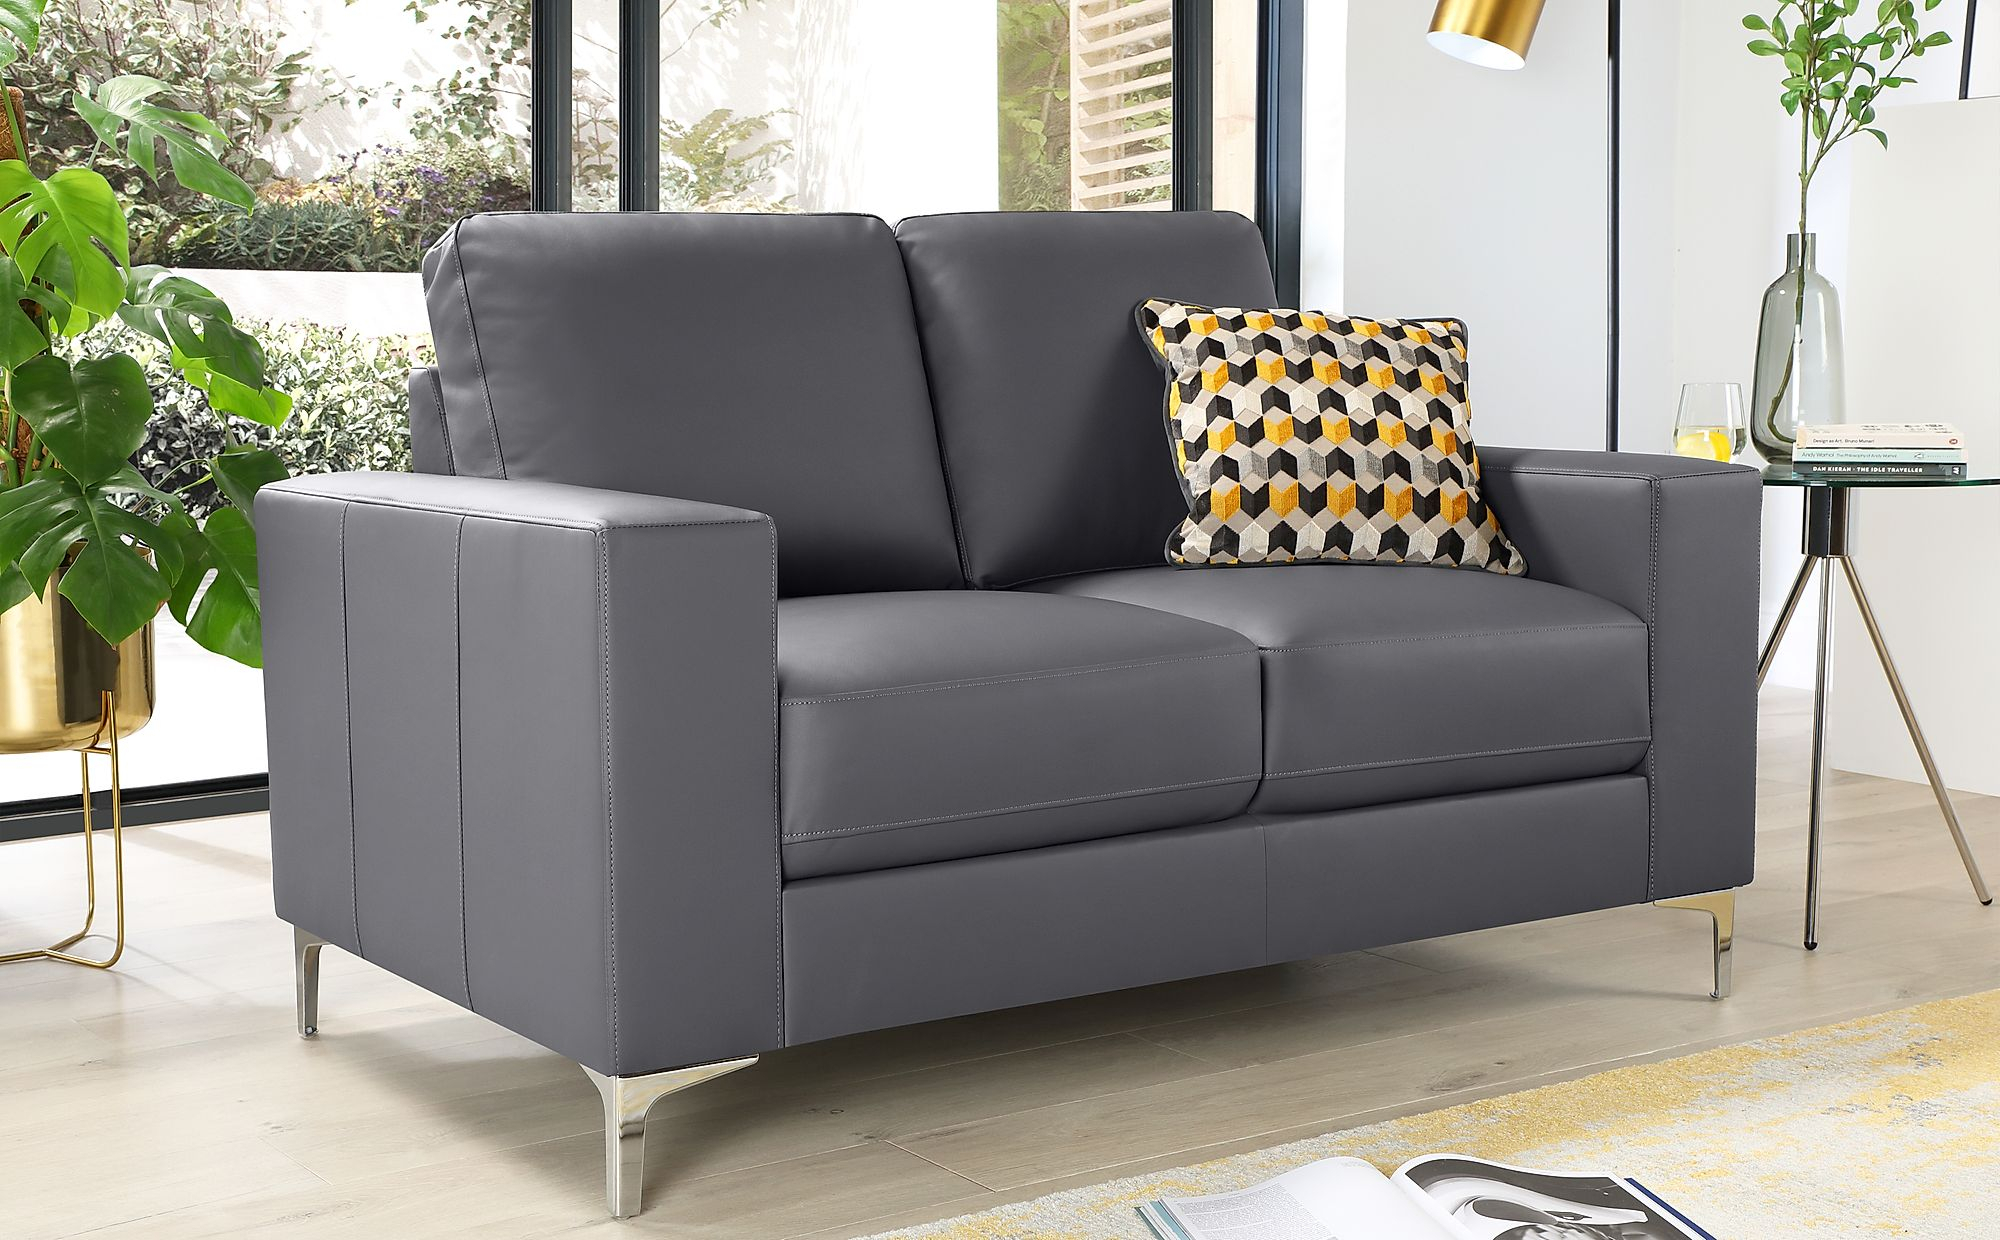 Baltimore Grey Leather 2 Seater Sofa | Furniture Choice Pertaining To Grey Sofa Chairs (View 5 of 15)